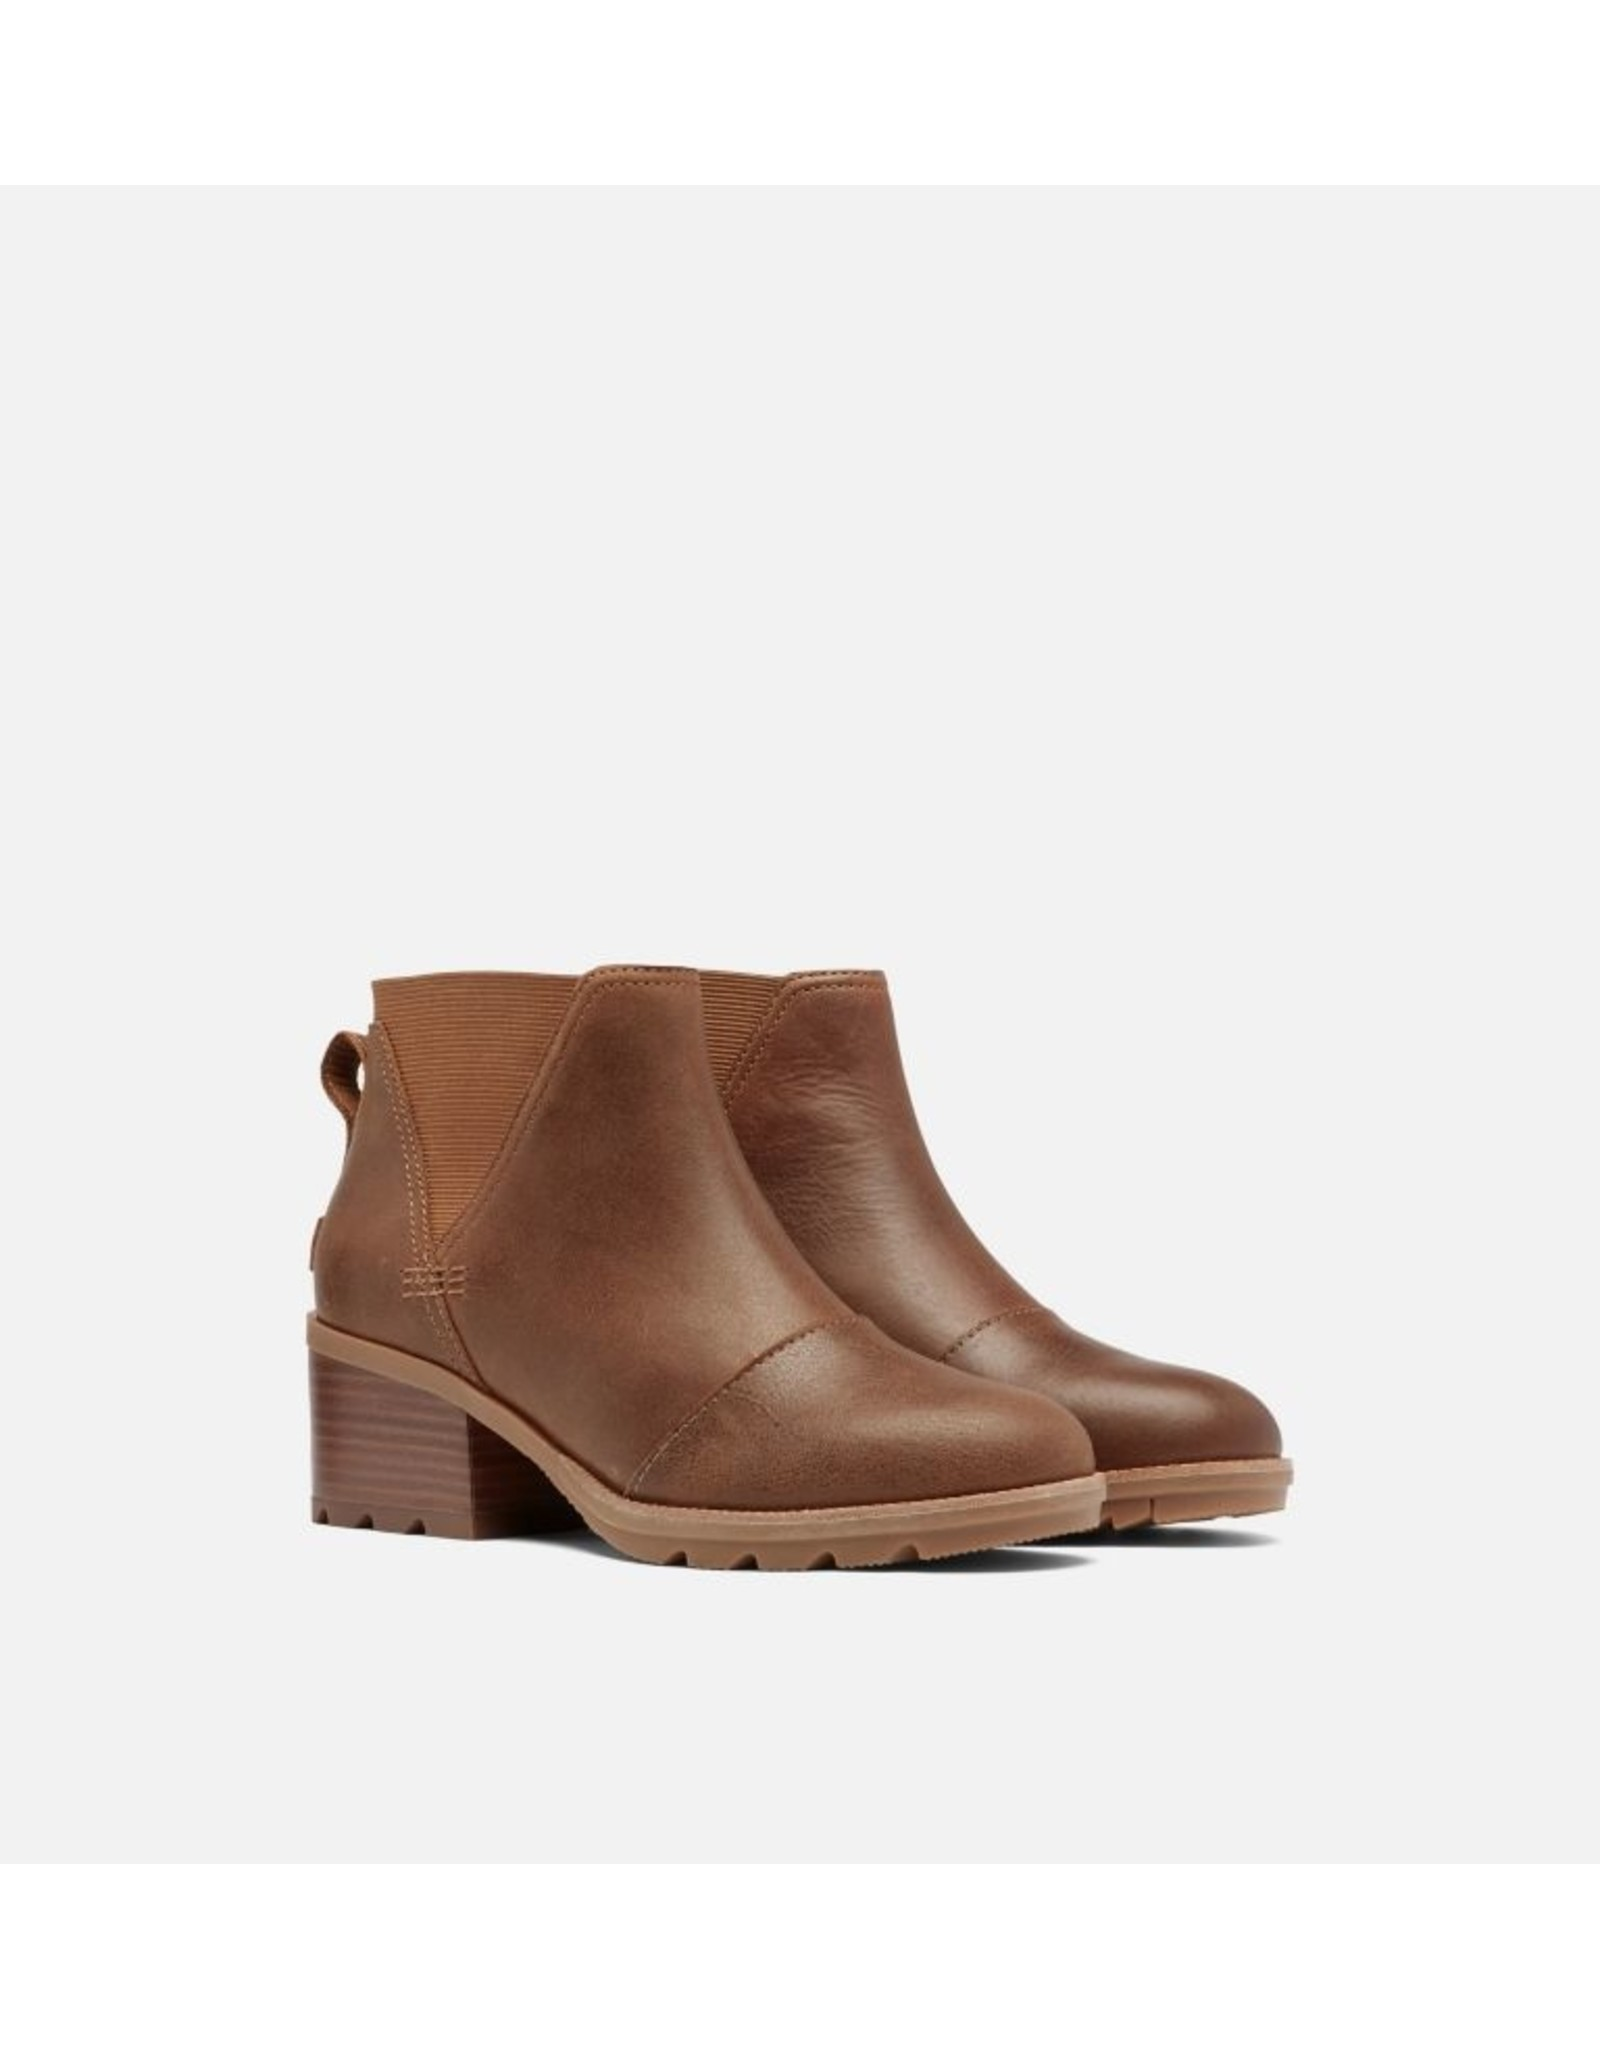 SOREL WOMEN'S CATE CHELSEA BOOTIE-OMEGA TAUPE, GUM